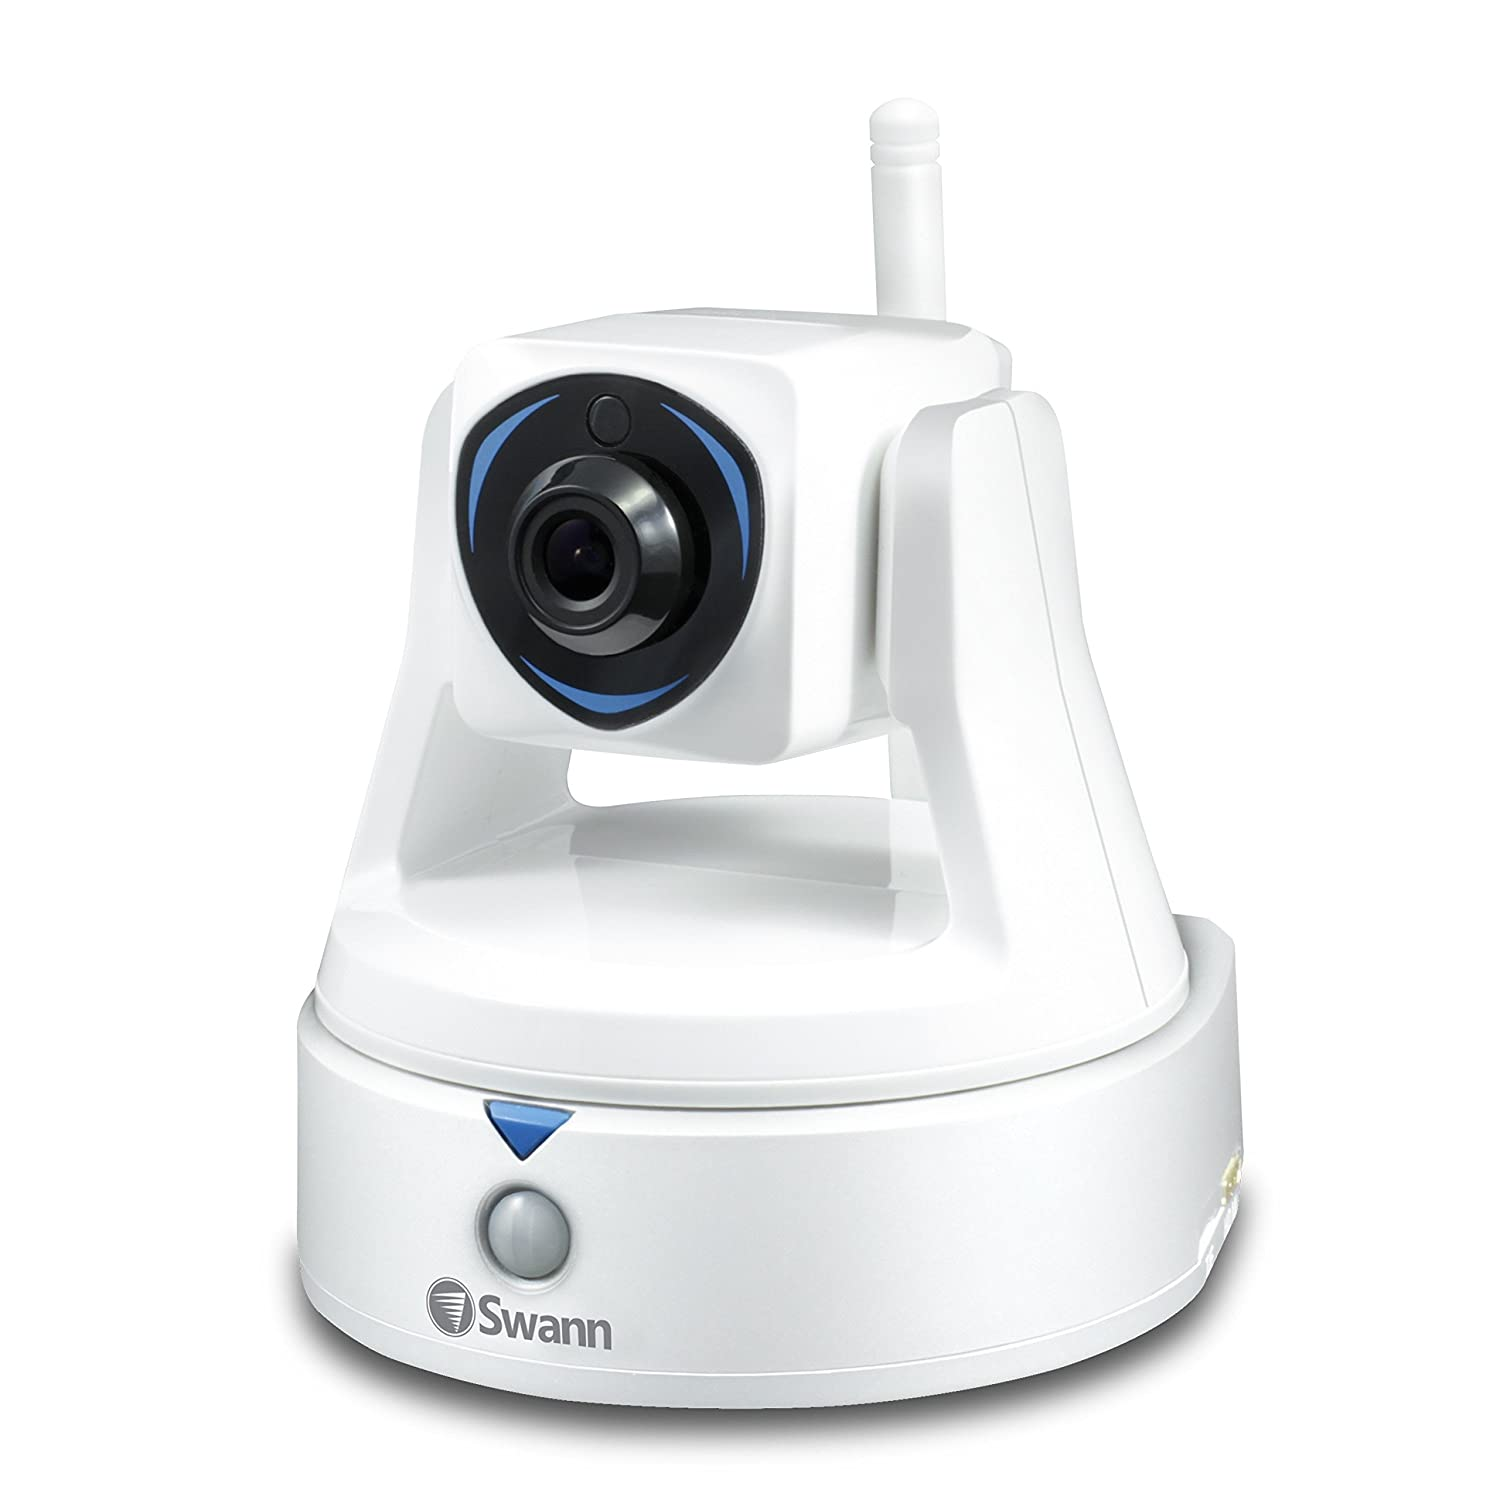 Amazoncom Swann Pan and Tilt WiFi Security Camera with Smart